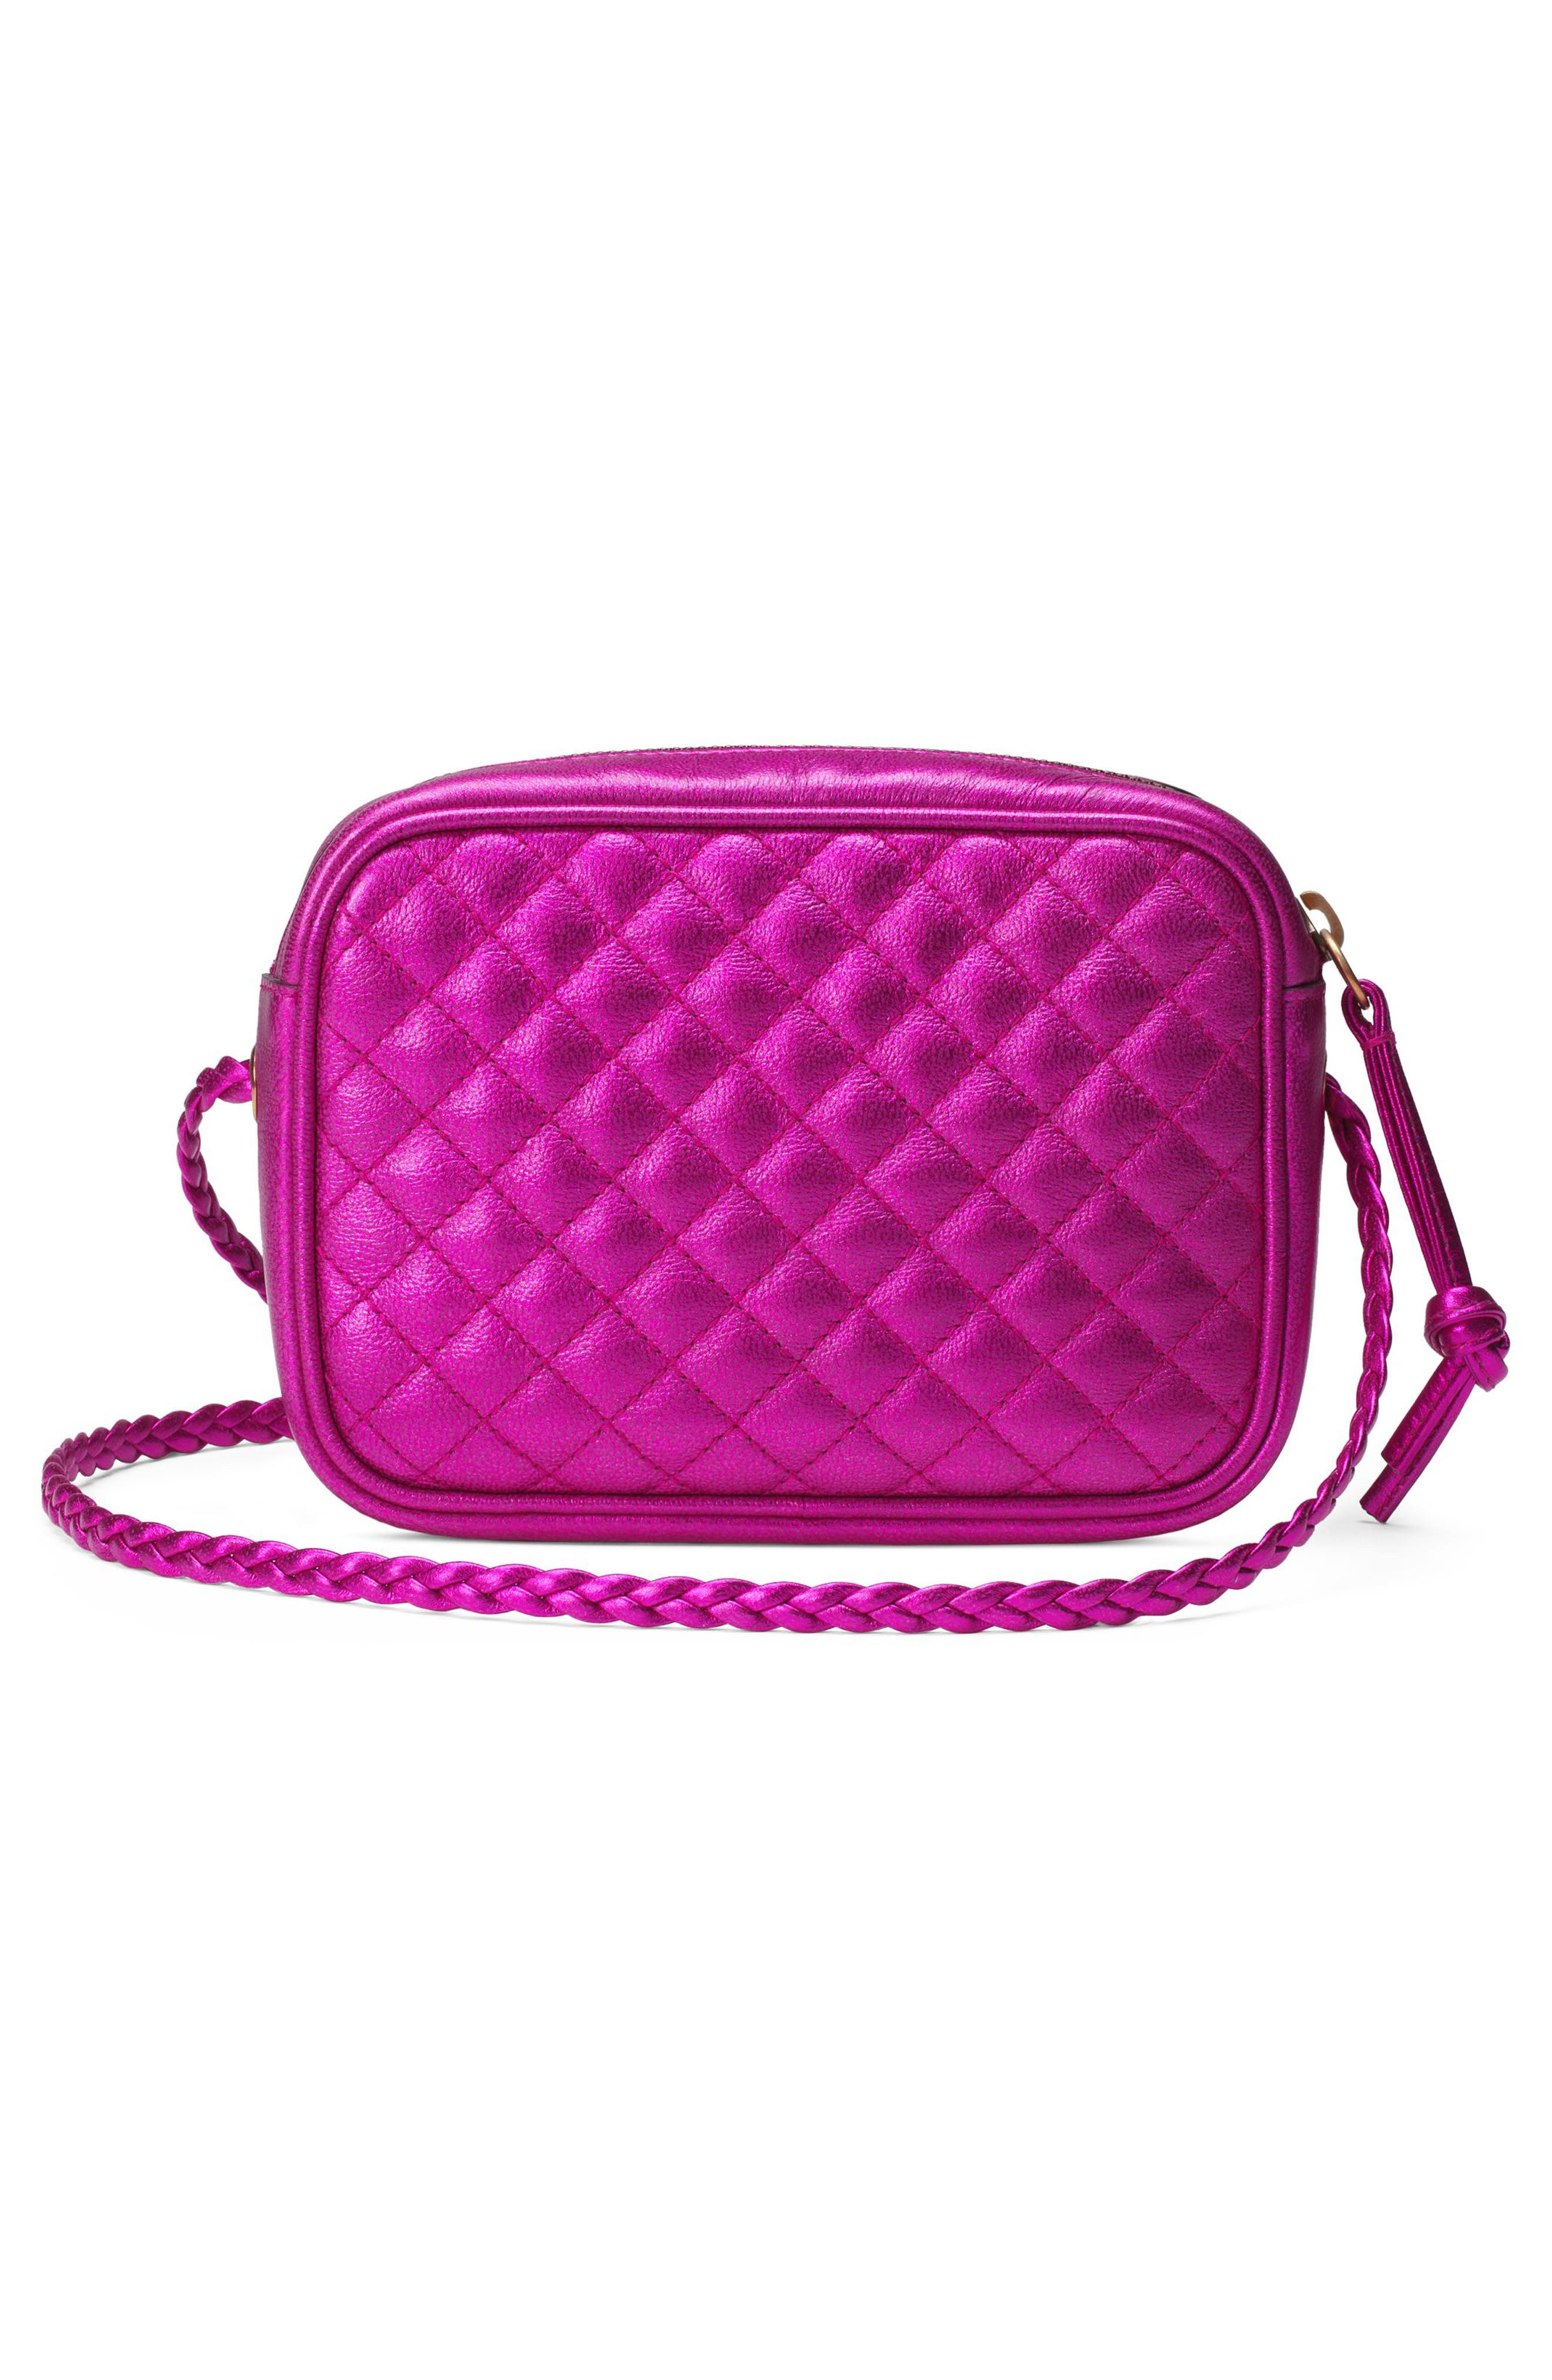 Quilted Metallic Leather Camera Bag,                             Alternate thumbnail 2, color,                             FUXIA